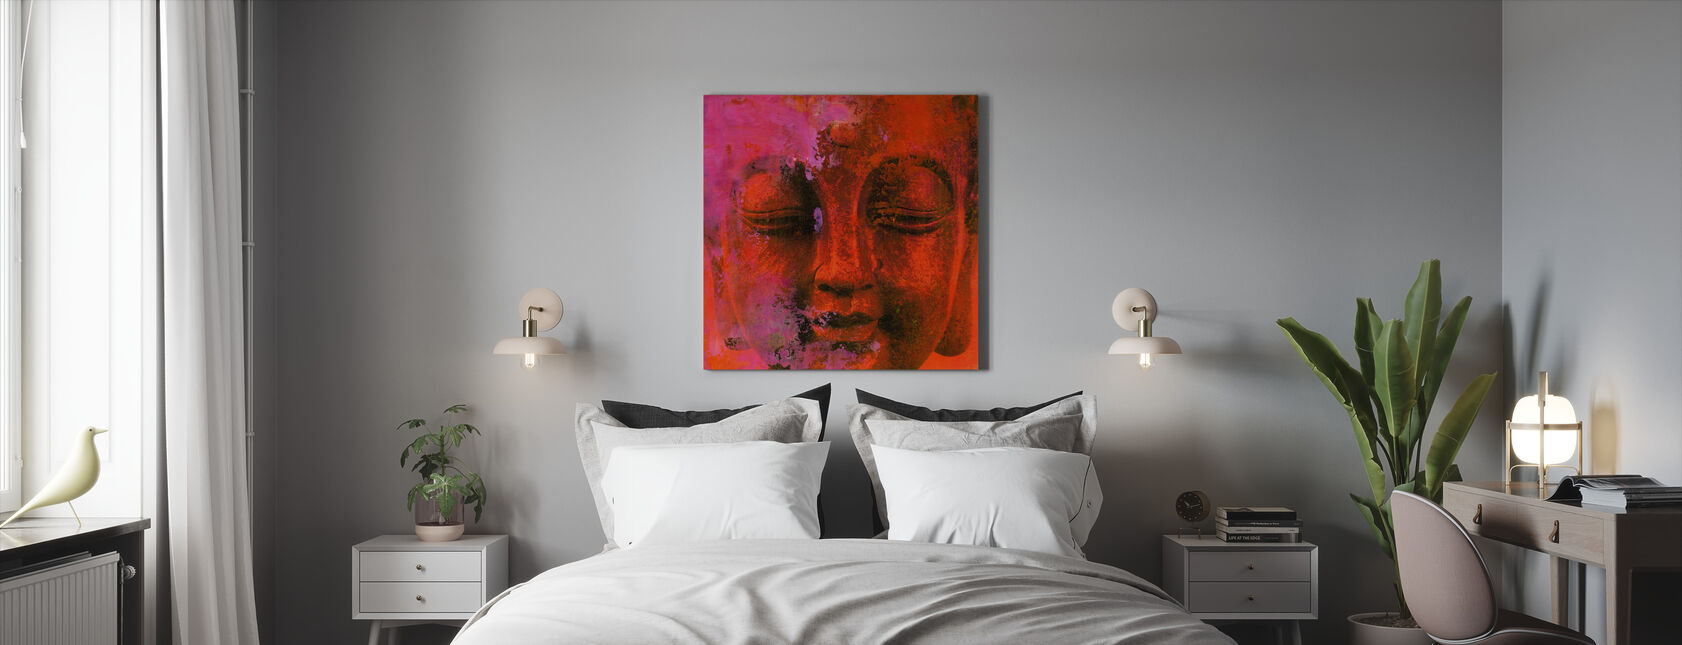 Red Buddha - Canvas print - Bedroom